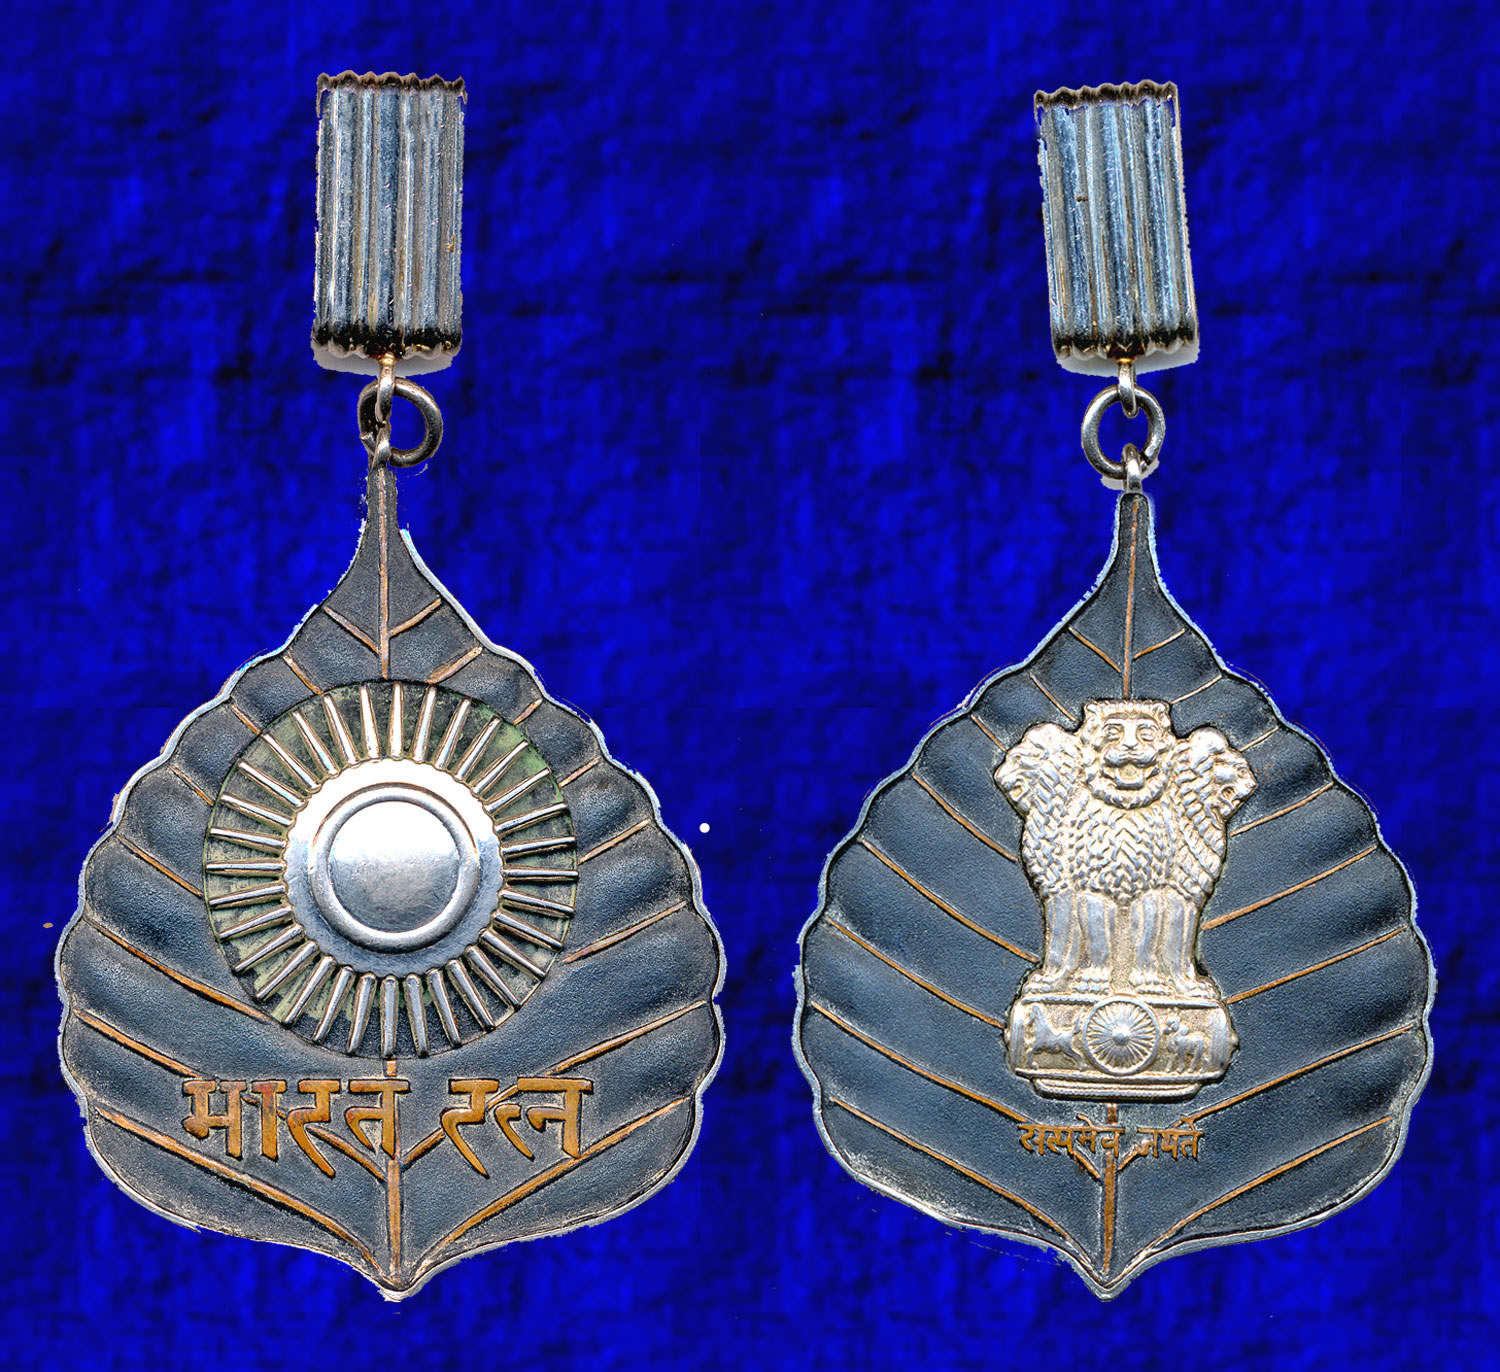 bharat ratna is india s highest civilian award bharat ratna means ...